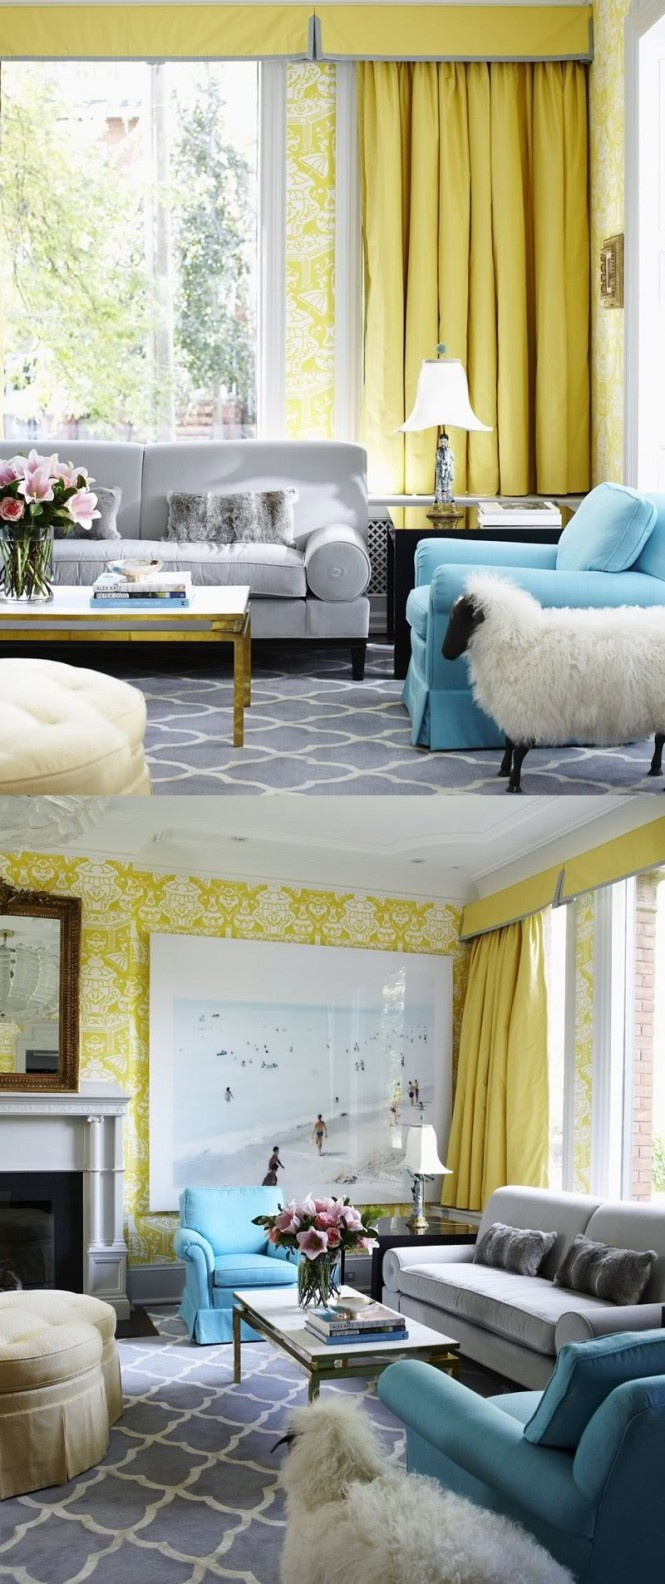 Yellow room interior inspiration 55 rooms for your for Duck egg blue and grey living room ideas